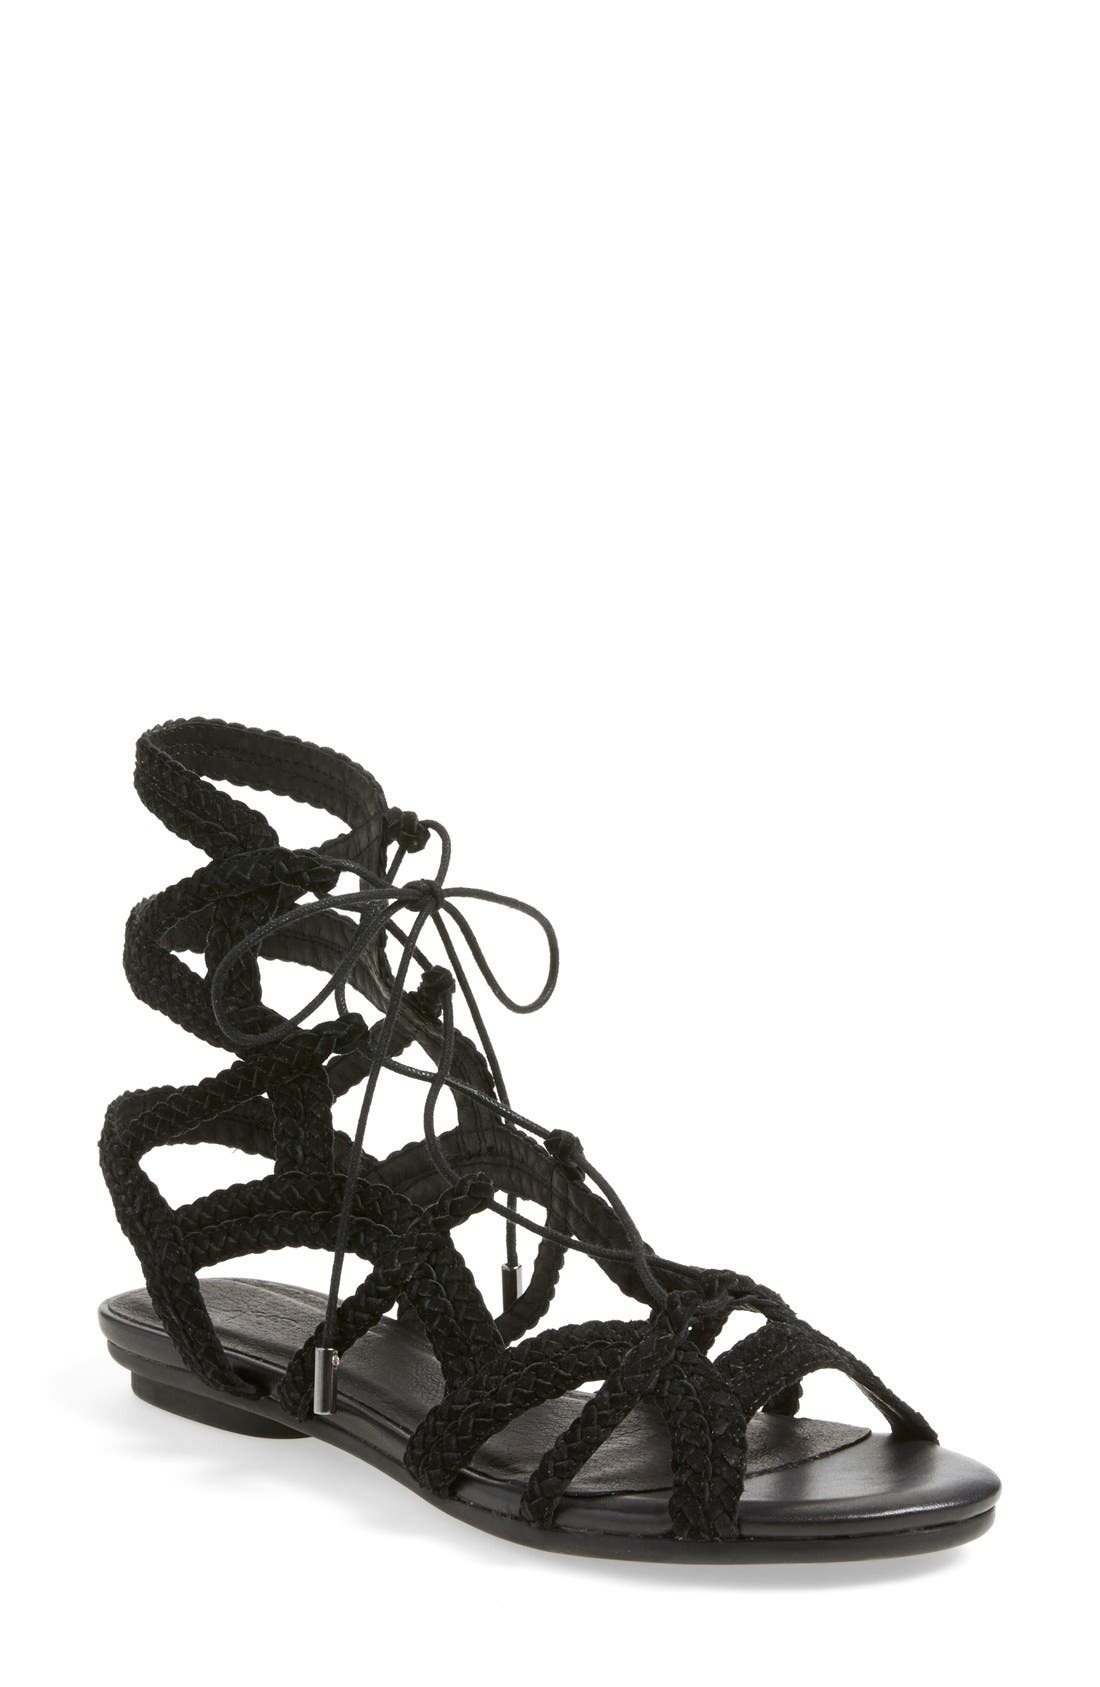 Alternate Image 1 Selected - Joie 'Fynn' Gladiator Sandal (Women)